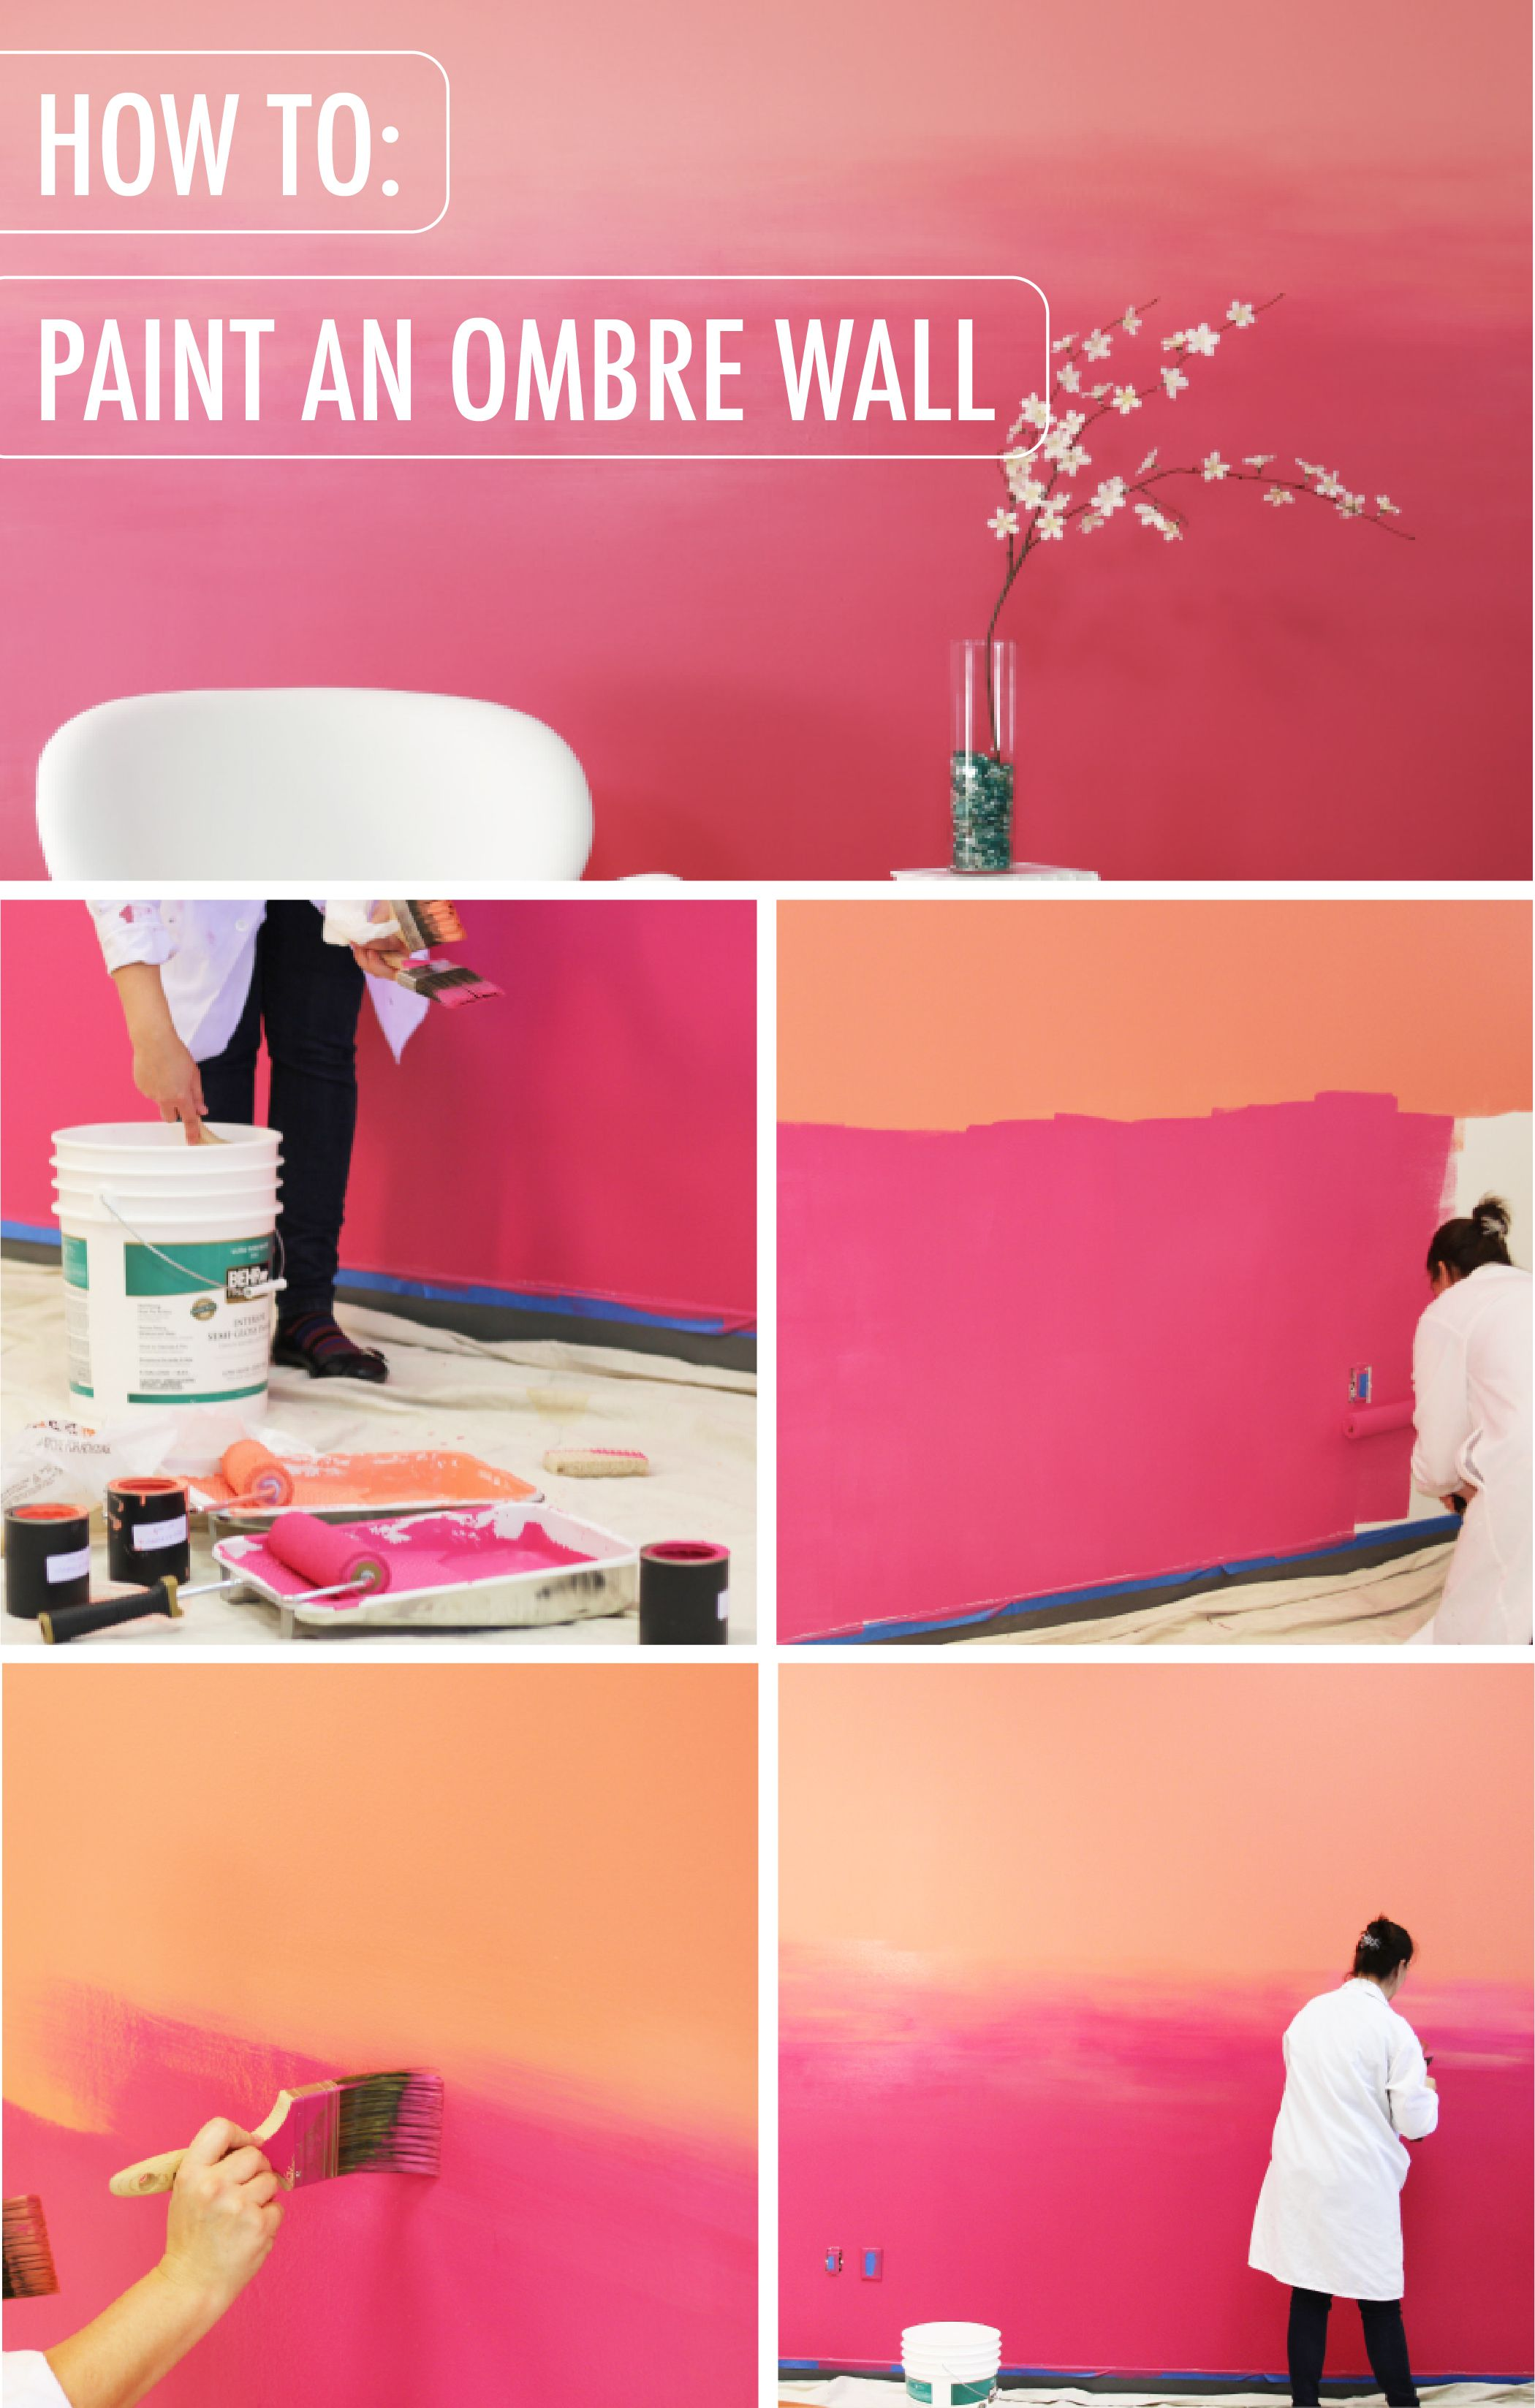 How to paint an ombre wall diy diy wall painting - What do you need to paint a room ...